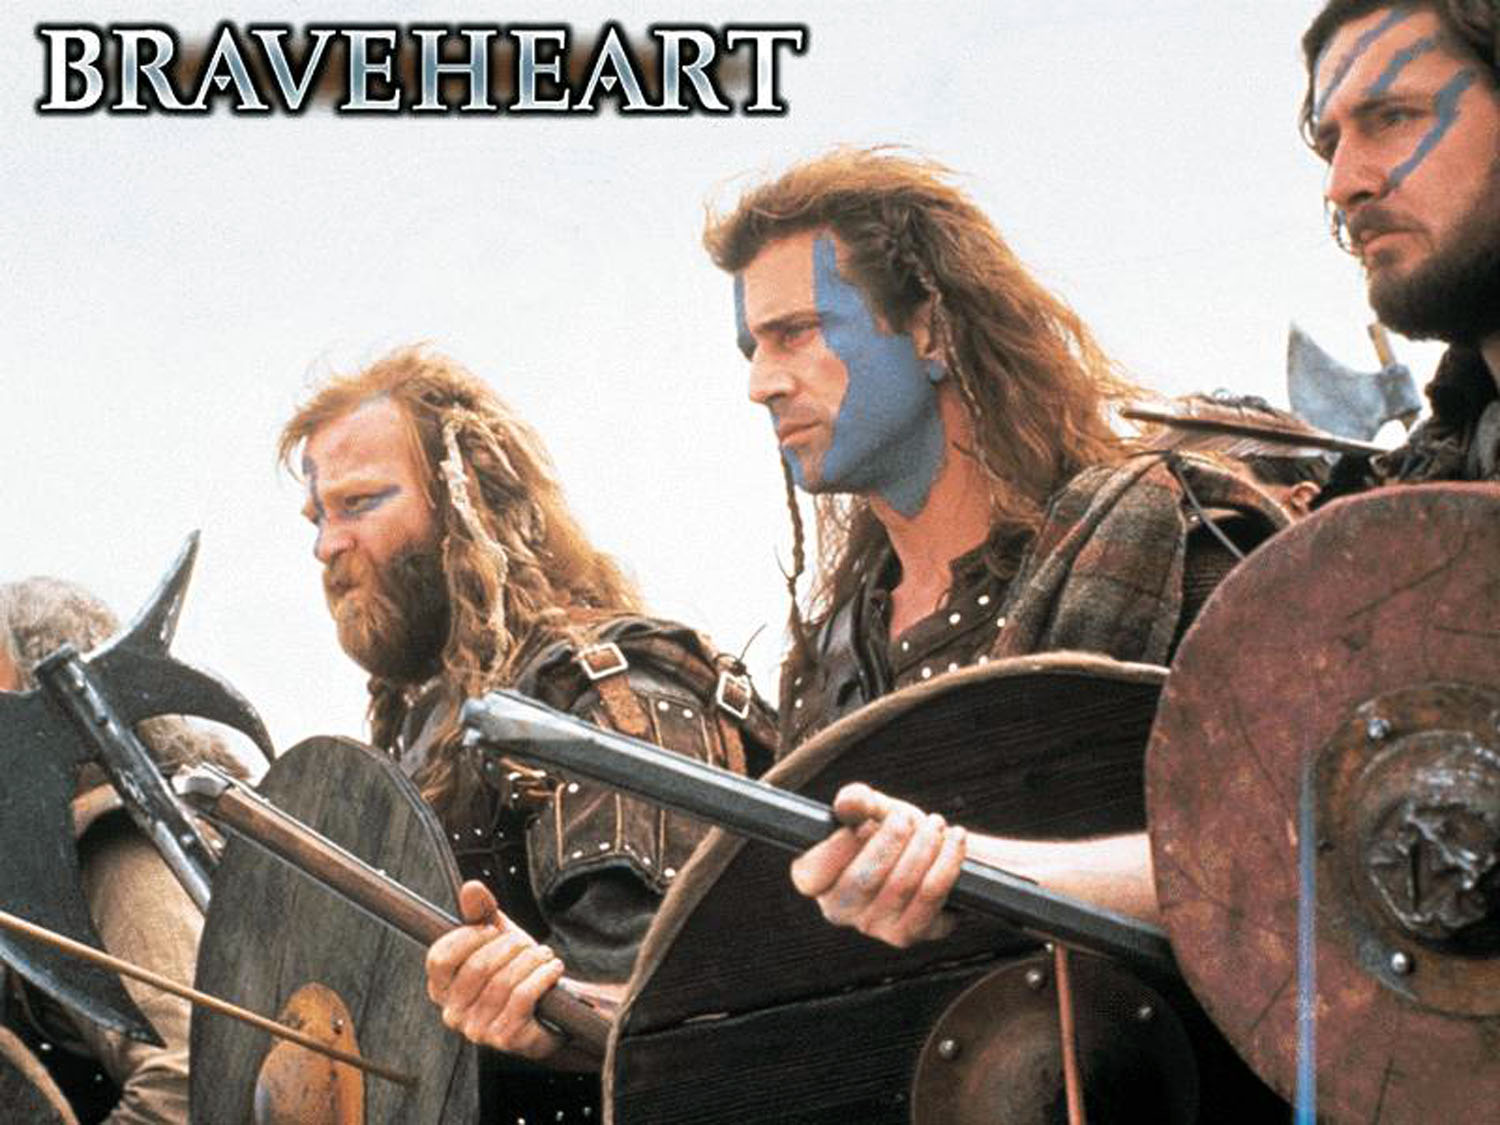 braveheart 1995 movie poster and dvd cover art